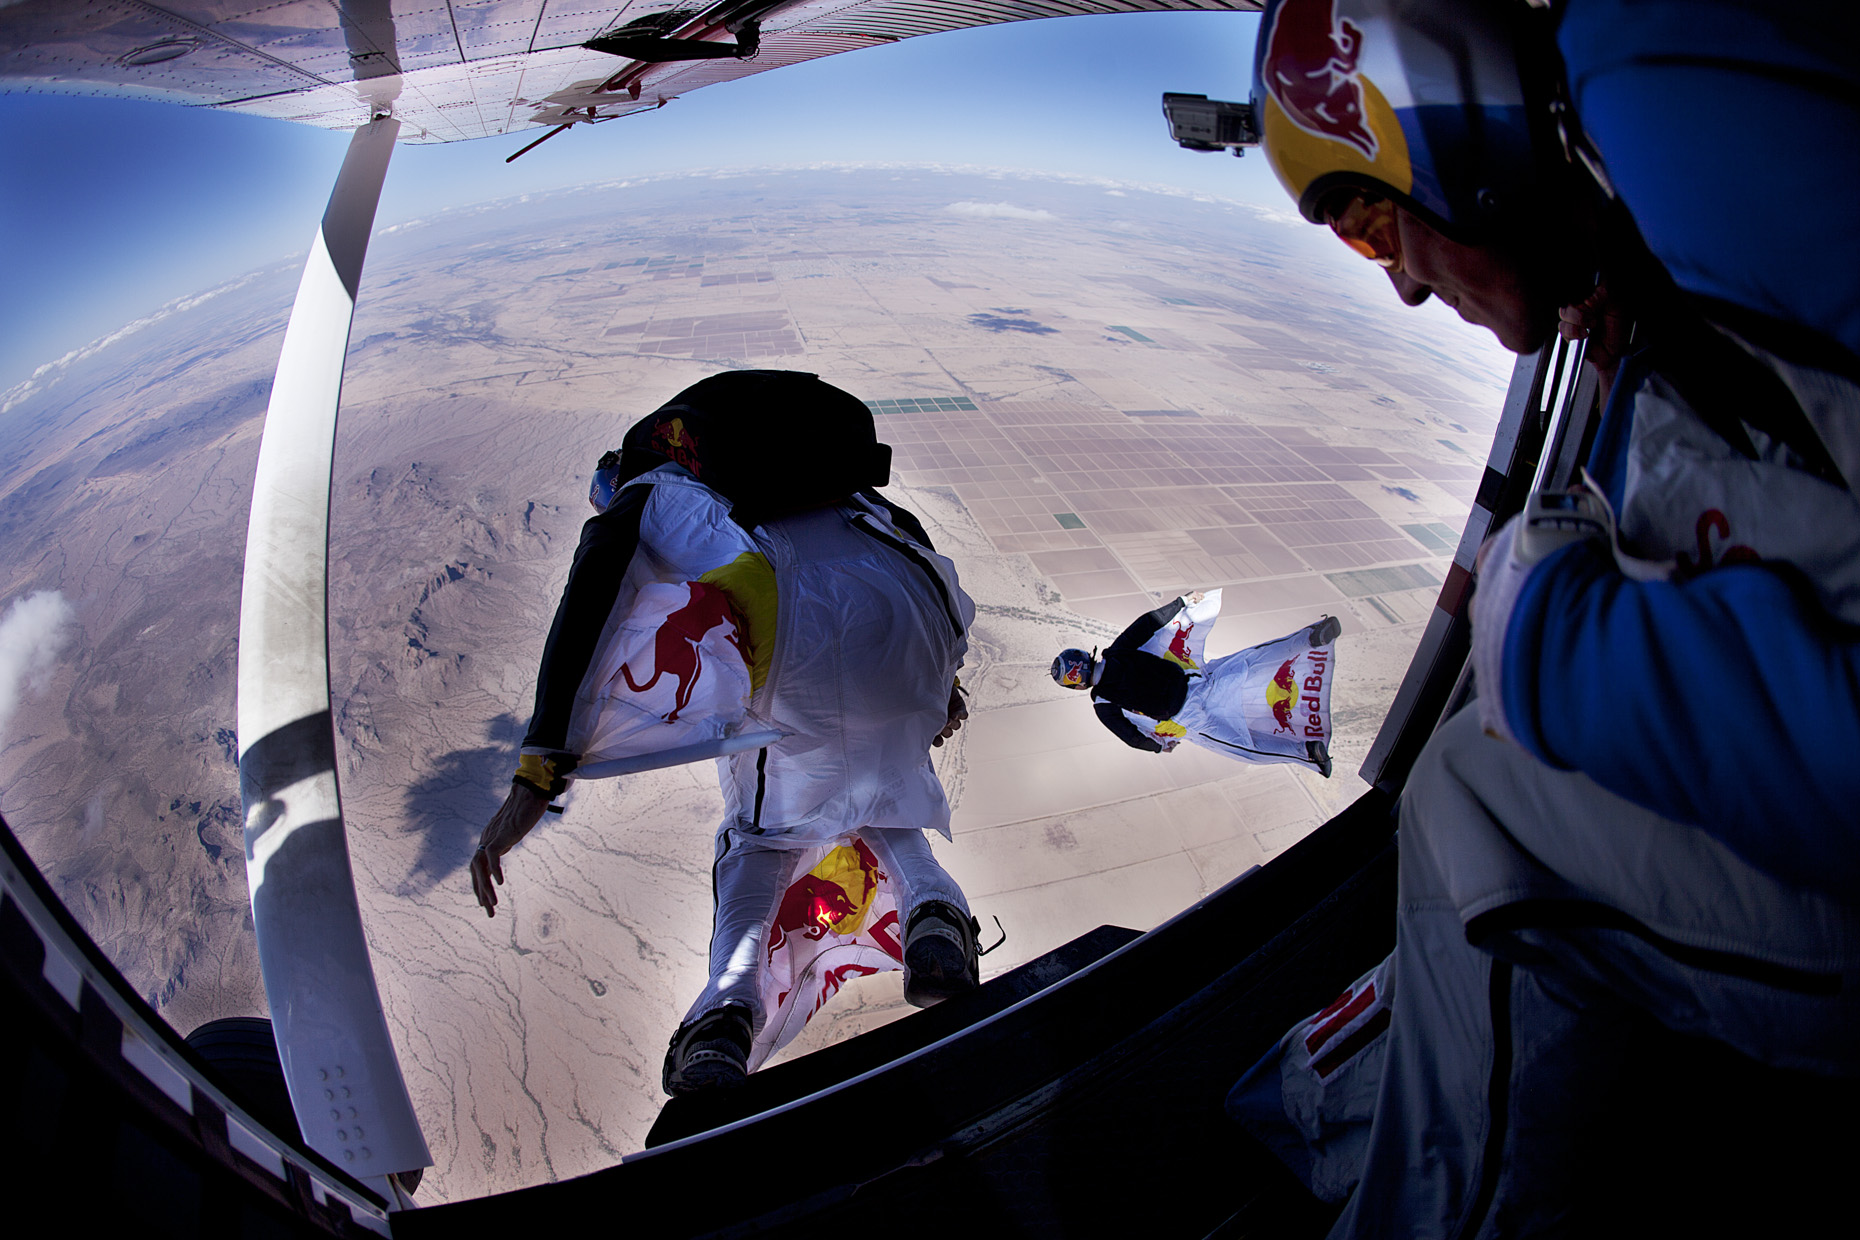 Red Bull Airforce wing suits over Arizona for Red Bull by Boston based commercial sports photographer Brian Nevins